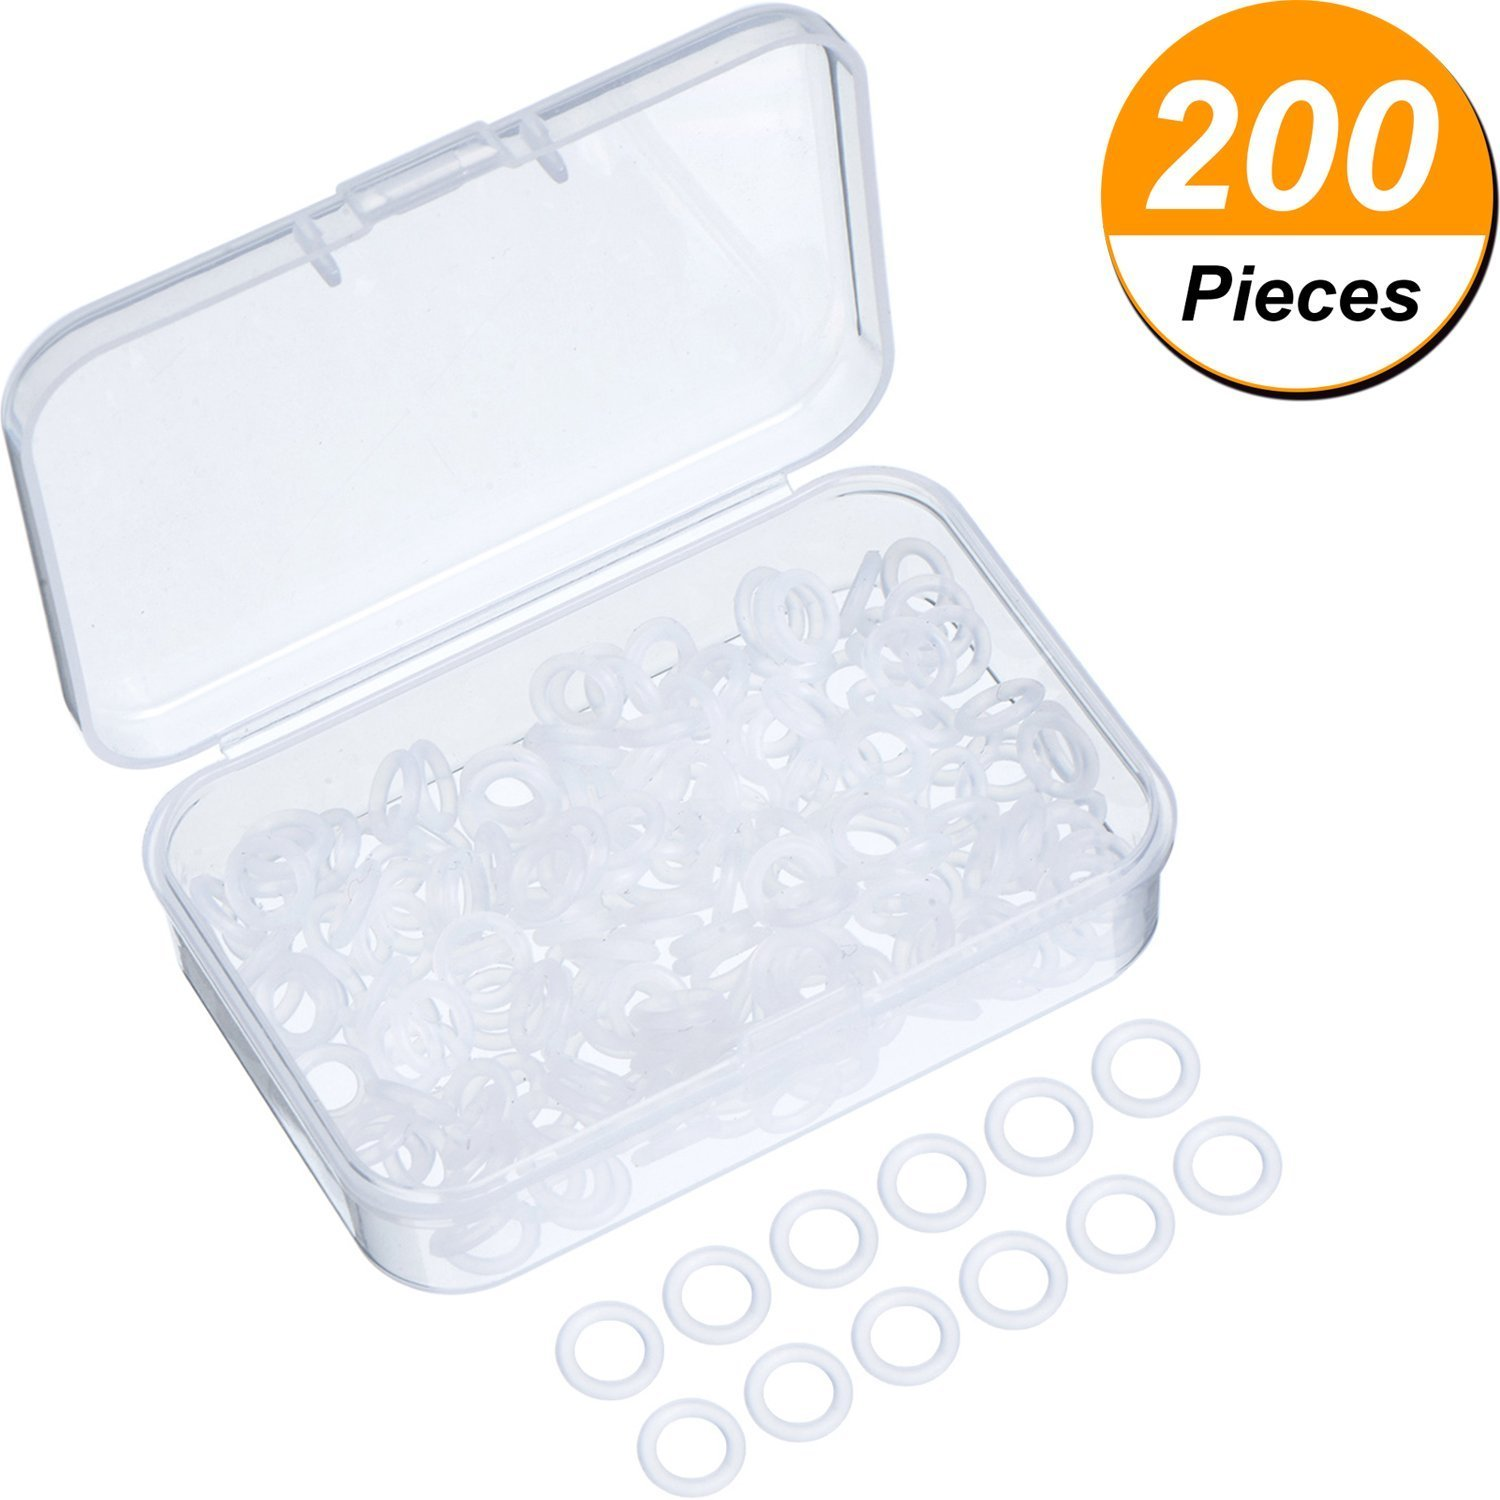 200 Pieces Rubber Rings Clear Seal O-ring Rubber Keyboard Dampeners with Plastic Storage Box for MX Switch Keyboard and Mechanical Keyboard Keys SGerste